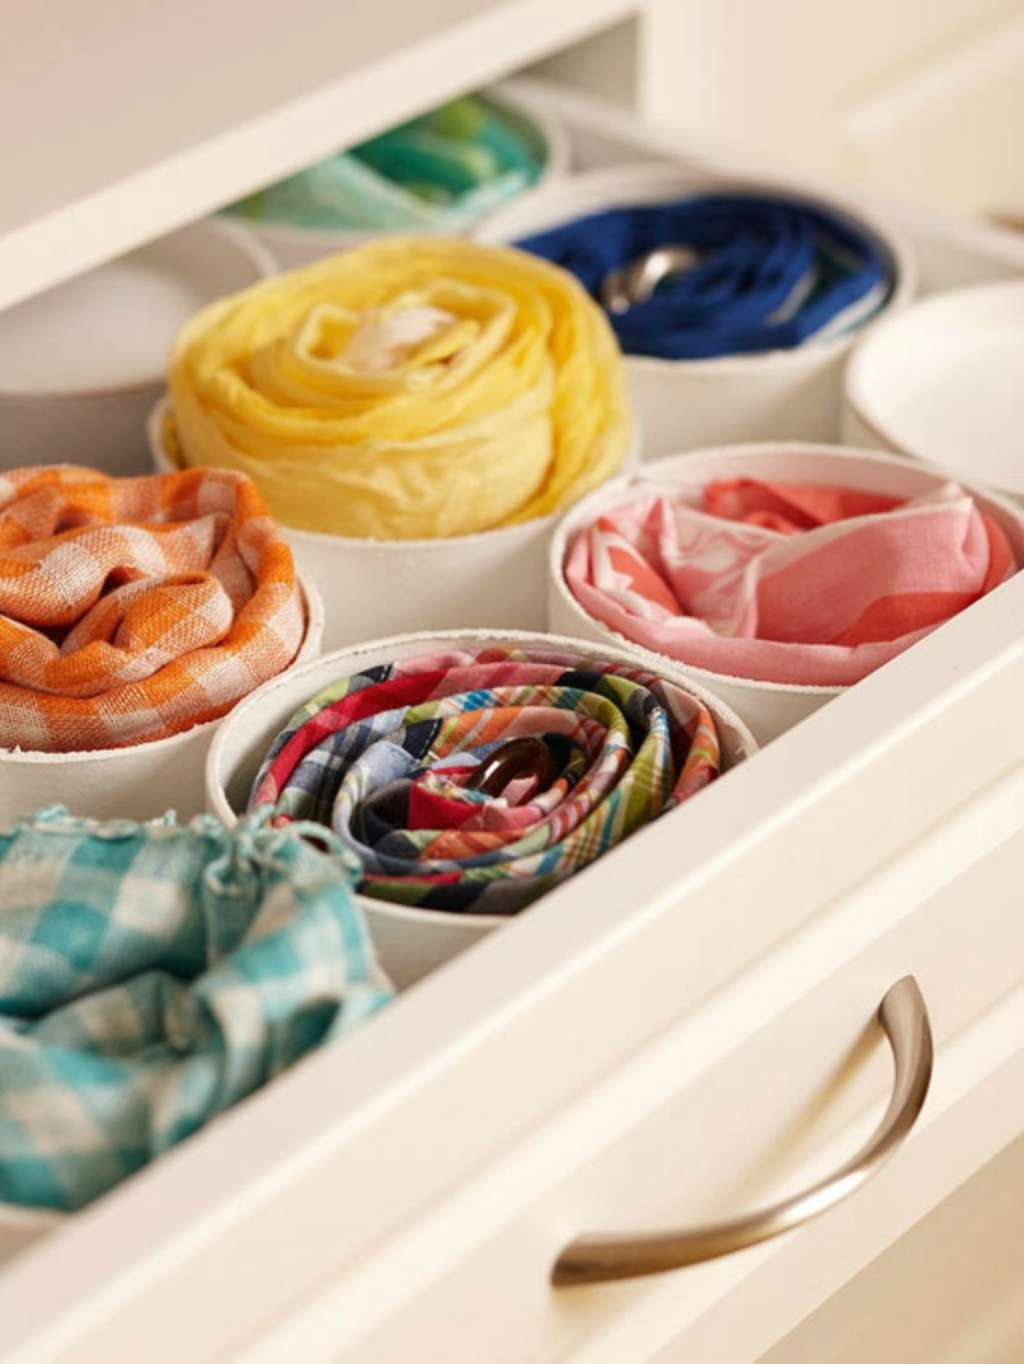 10 Hacks That Will Revolutionize Your Clothing Drawers